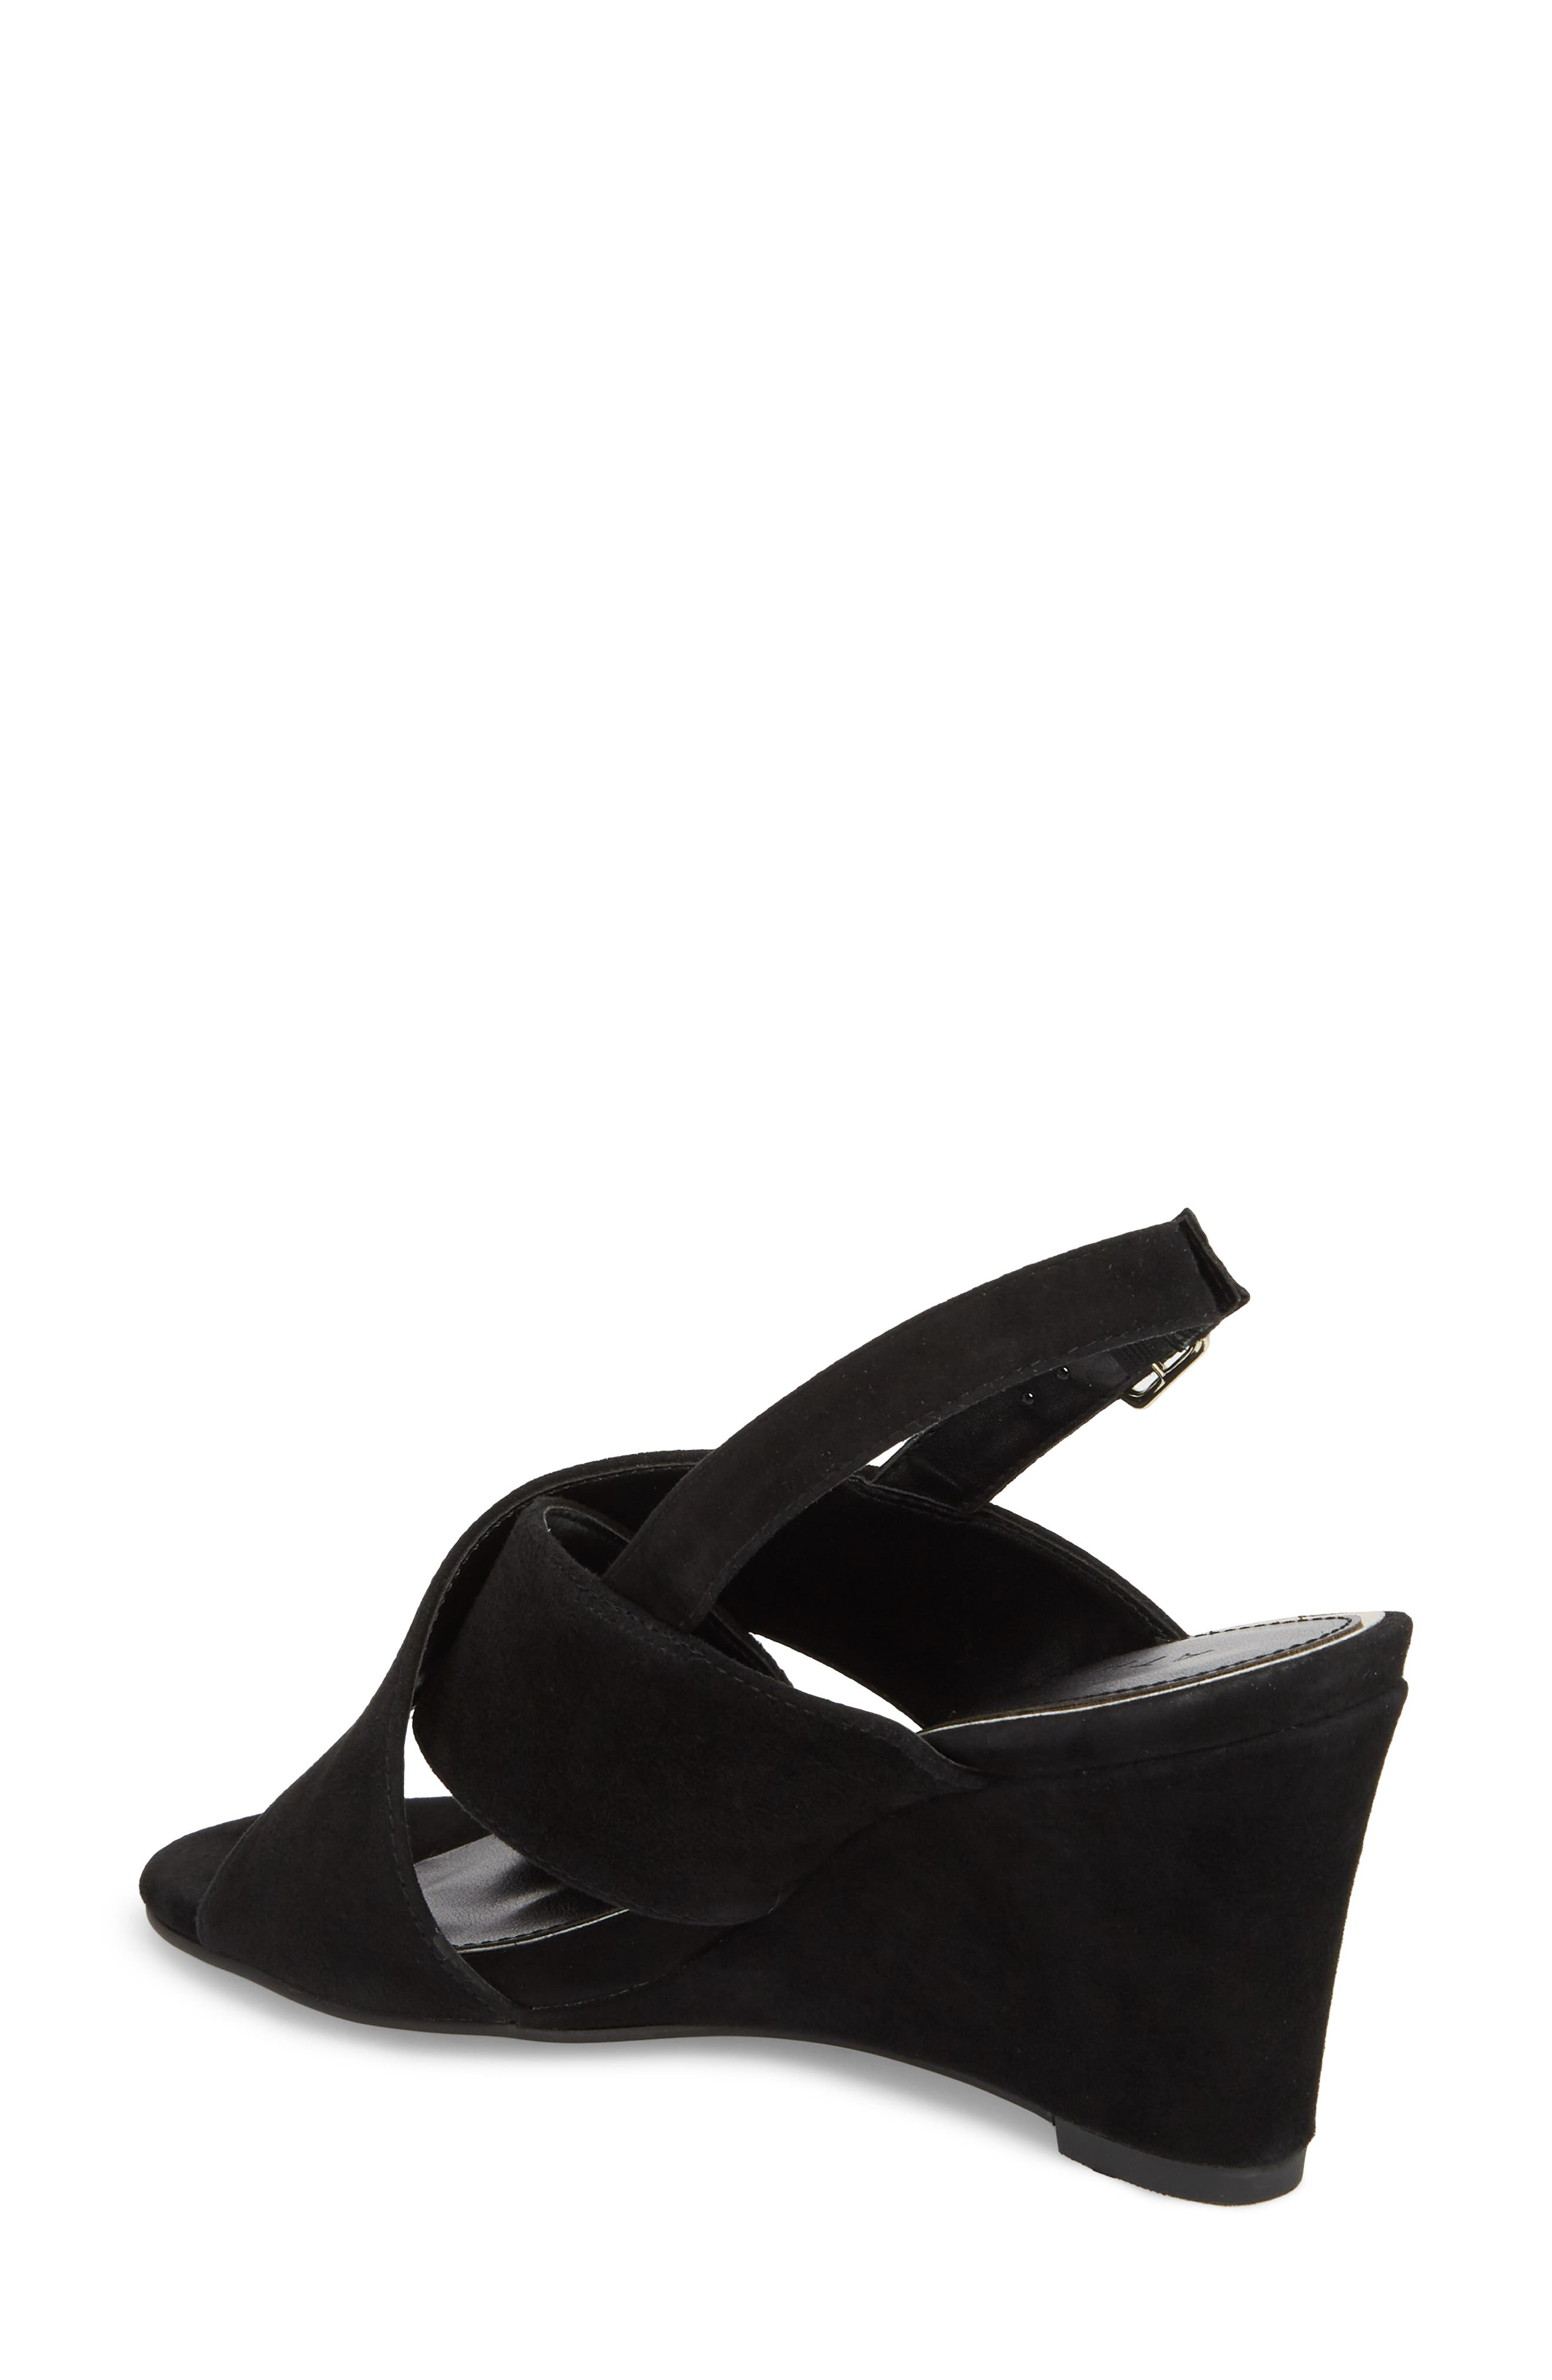 Eastford Wedge Sandal,                             Alternate thumbnail 2, color,                             BLACK SUEDE